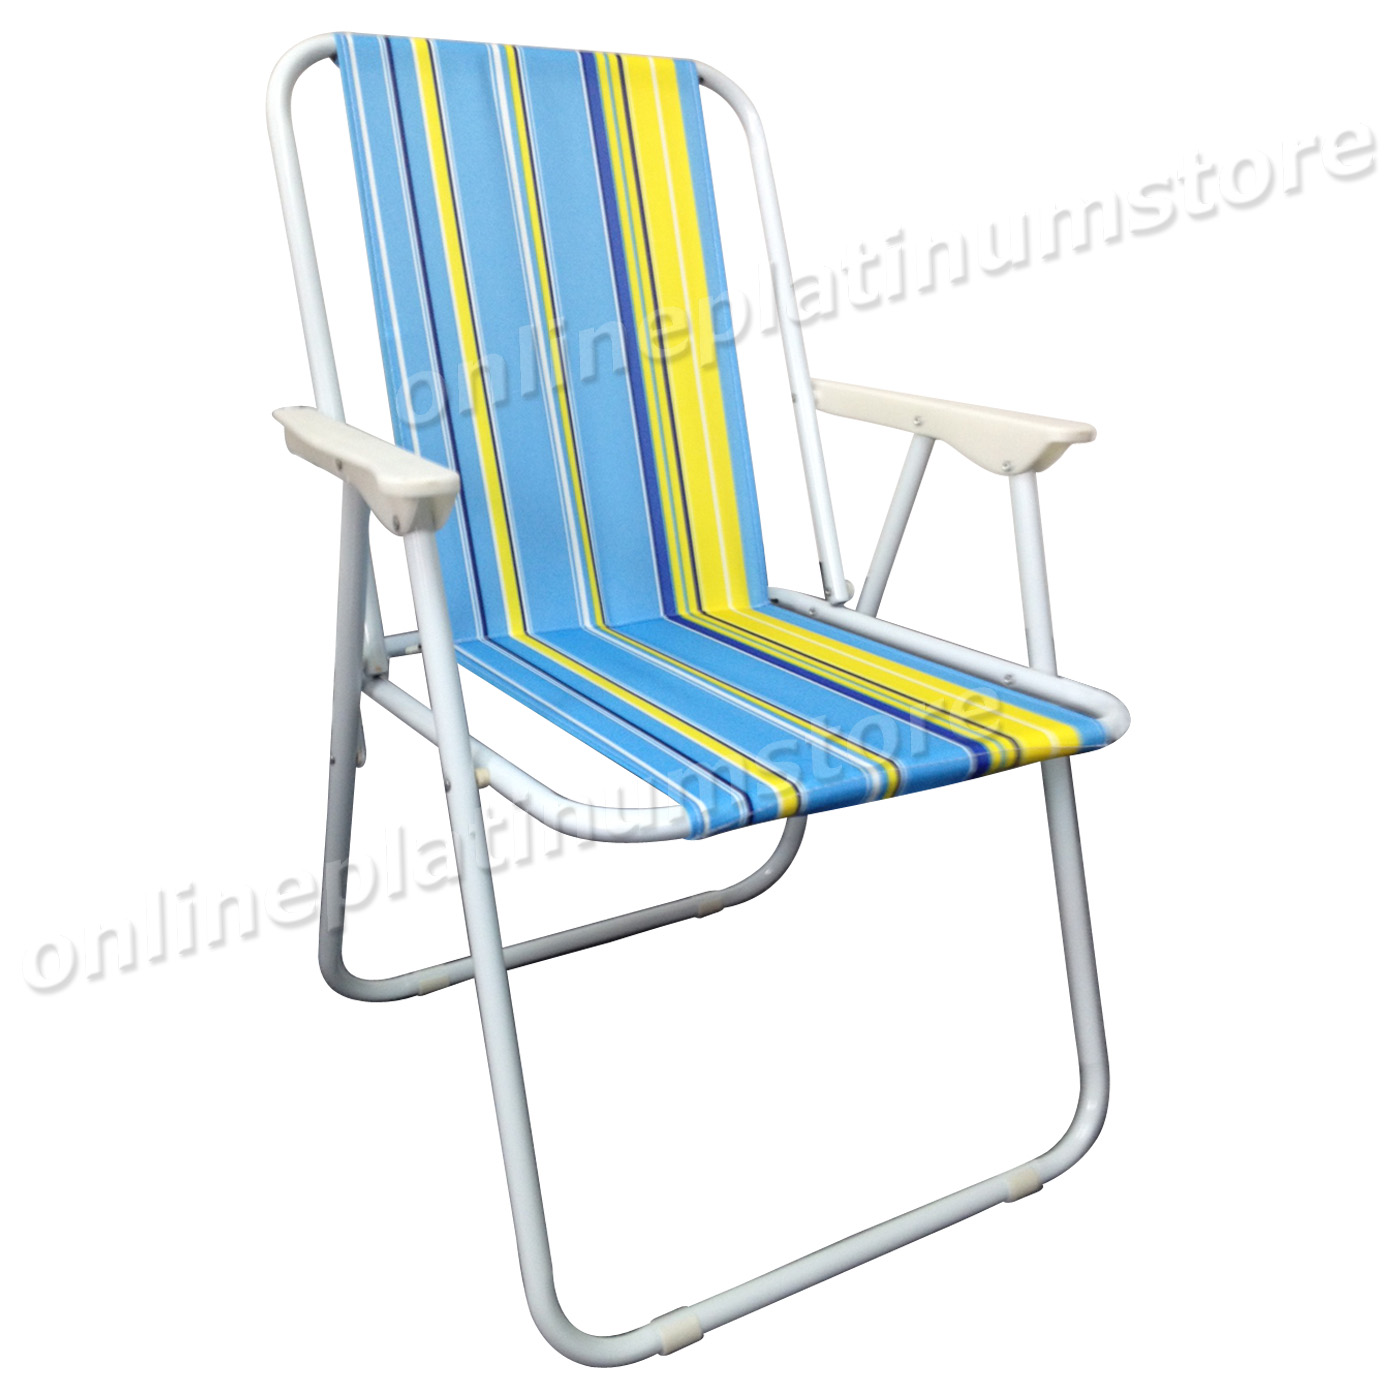 SET OF 2 x LIGHTWEIGHT PORTABLE OUTDOOR GARDEN CAMPING BEACH DECK FOLDING CHA